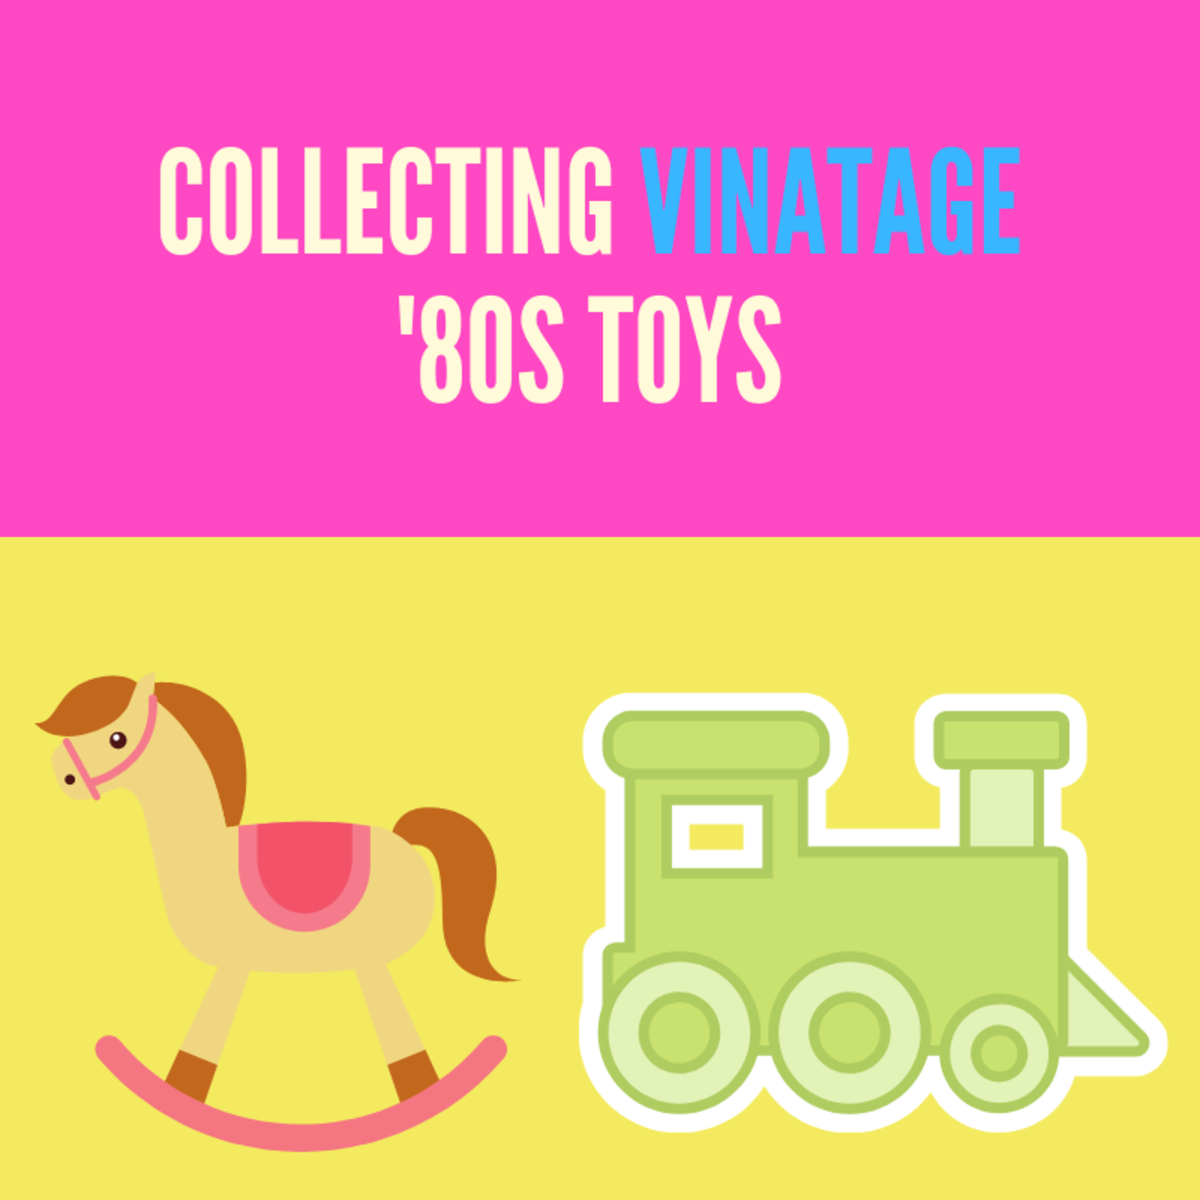 Whether you are in it for the memories or the money, collecting toys for the 1980s is an intriguing hobby!